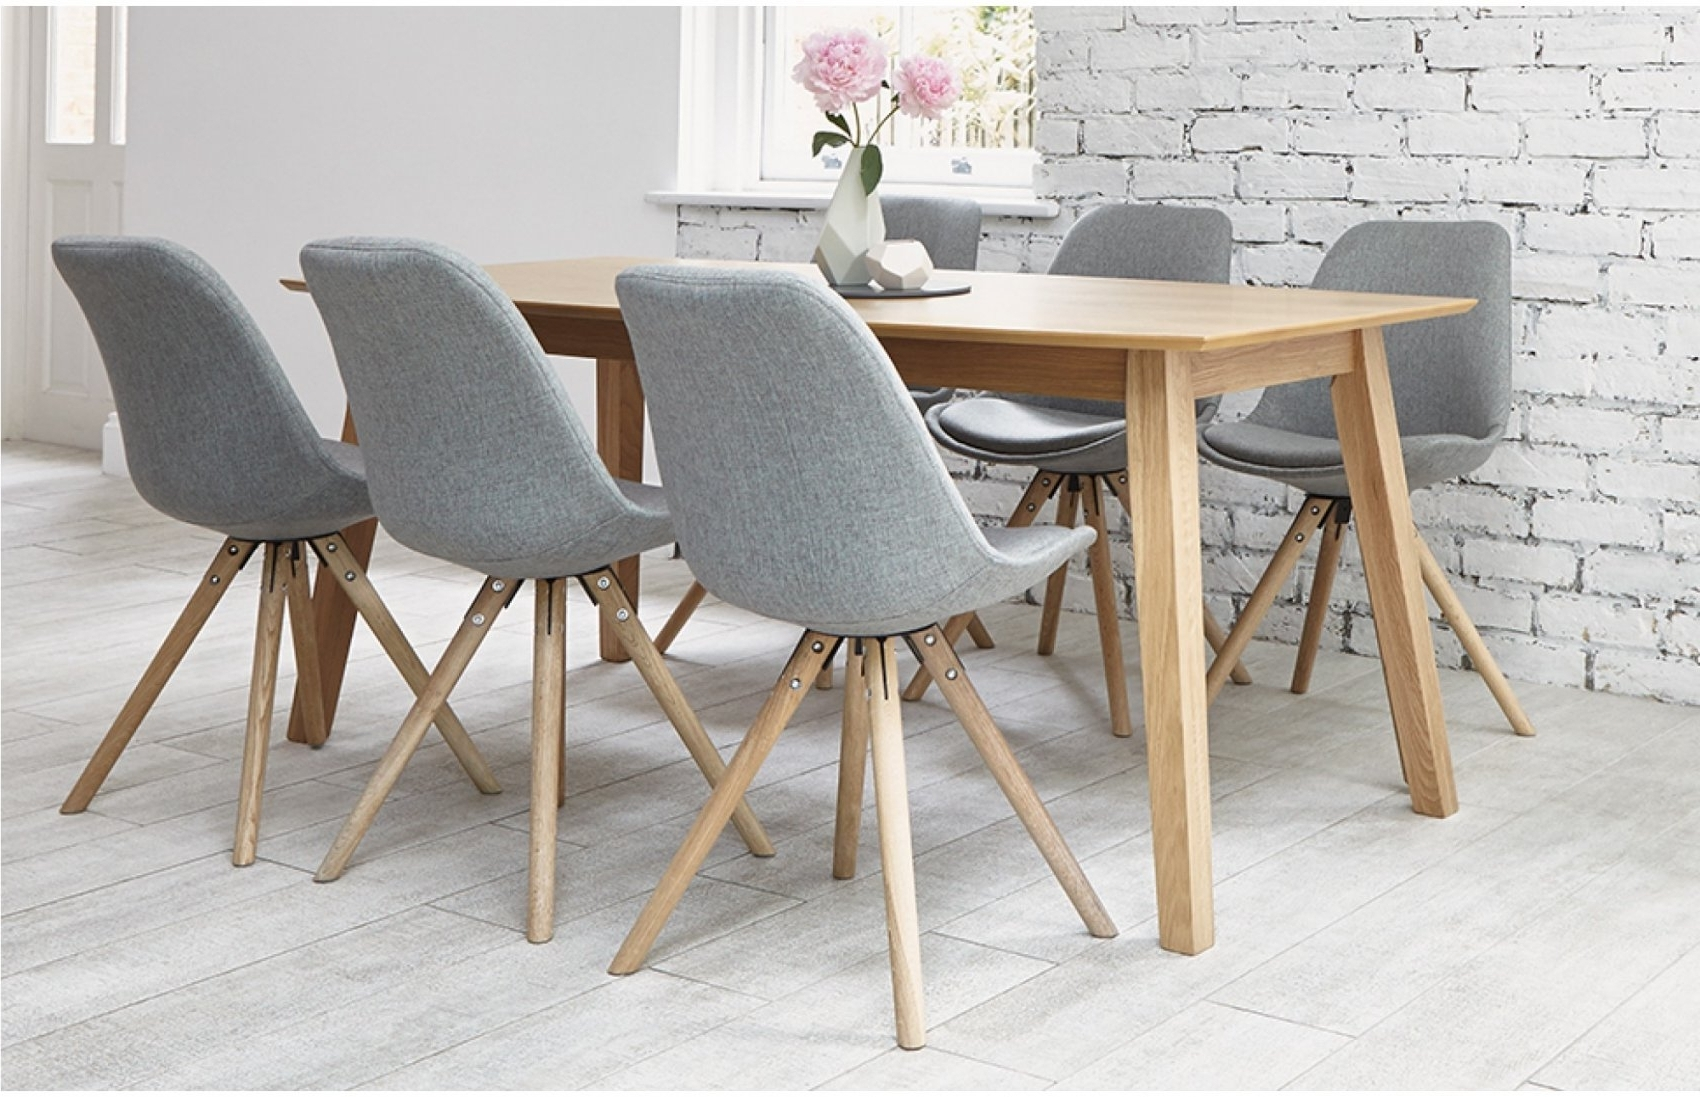 6 Seat Dining Tables Regarding Well Known 6 Seater Dining Sets Grey Home Furniture Out Out Navy Upholstered (View 13 of 25)